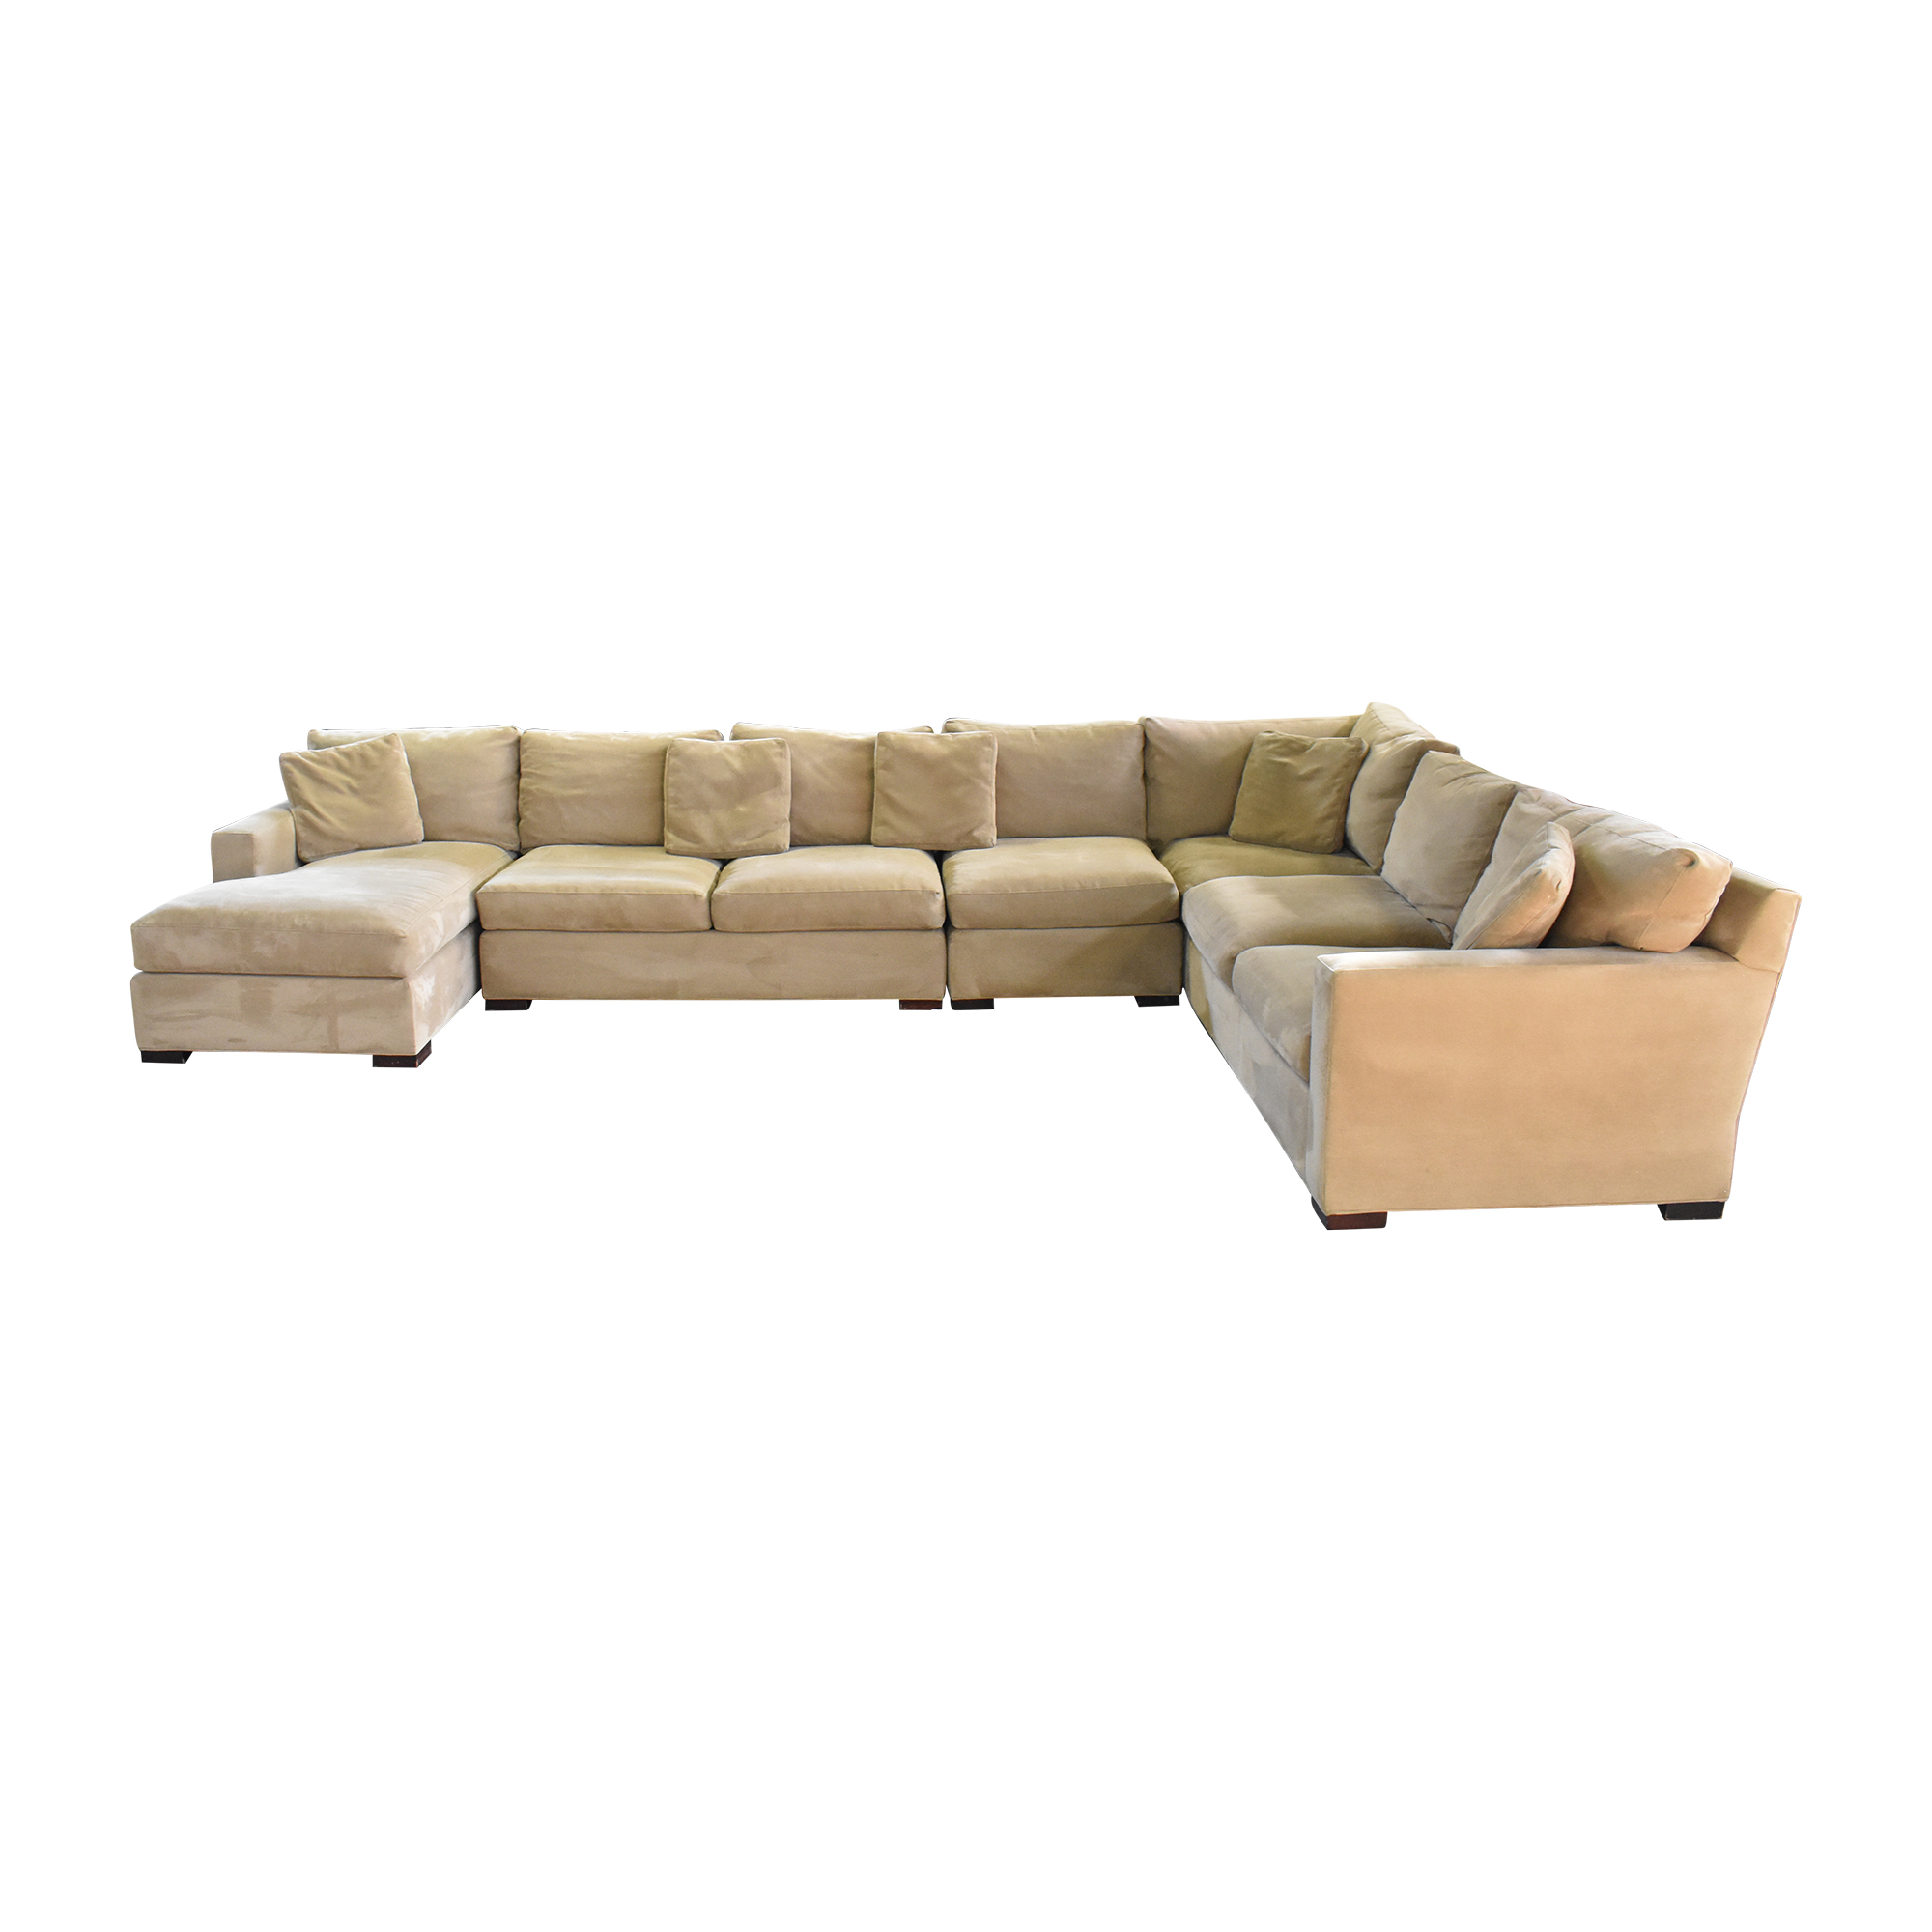 buy Crate & Barrel Crate & Barrel Axis Sectional Sofa with Chaise online